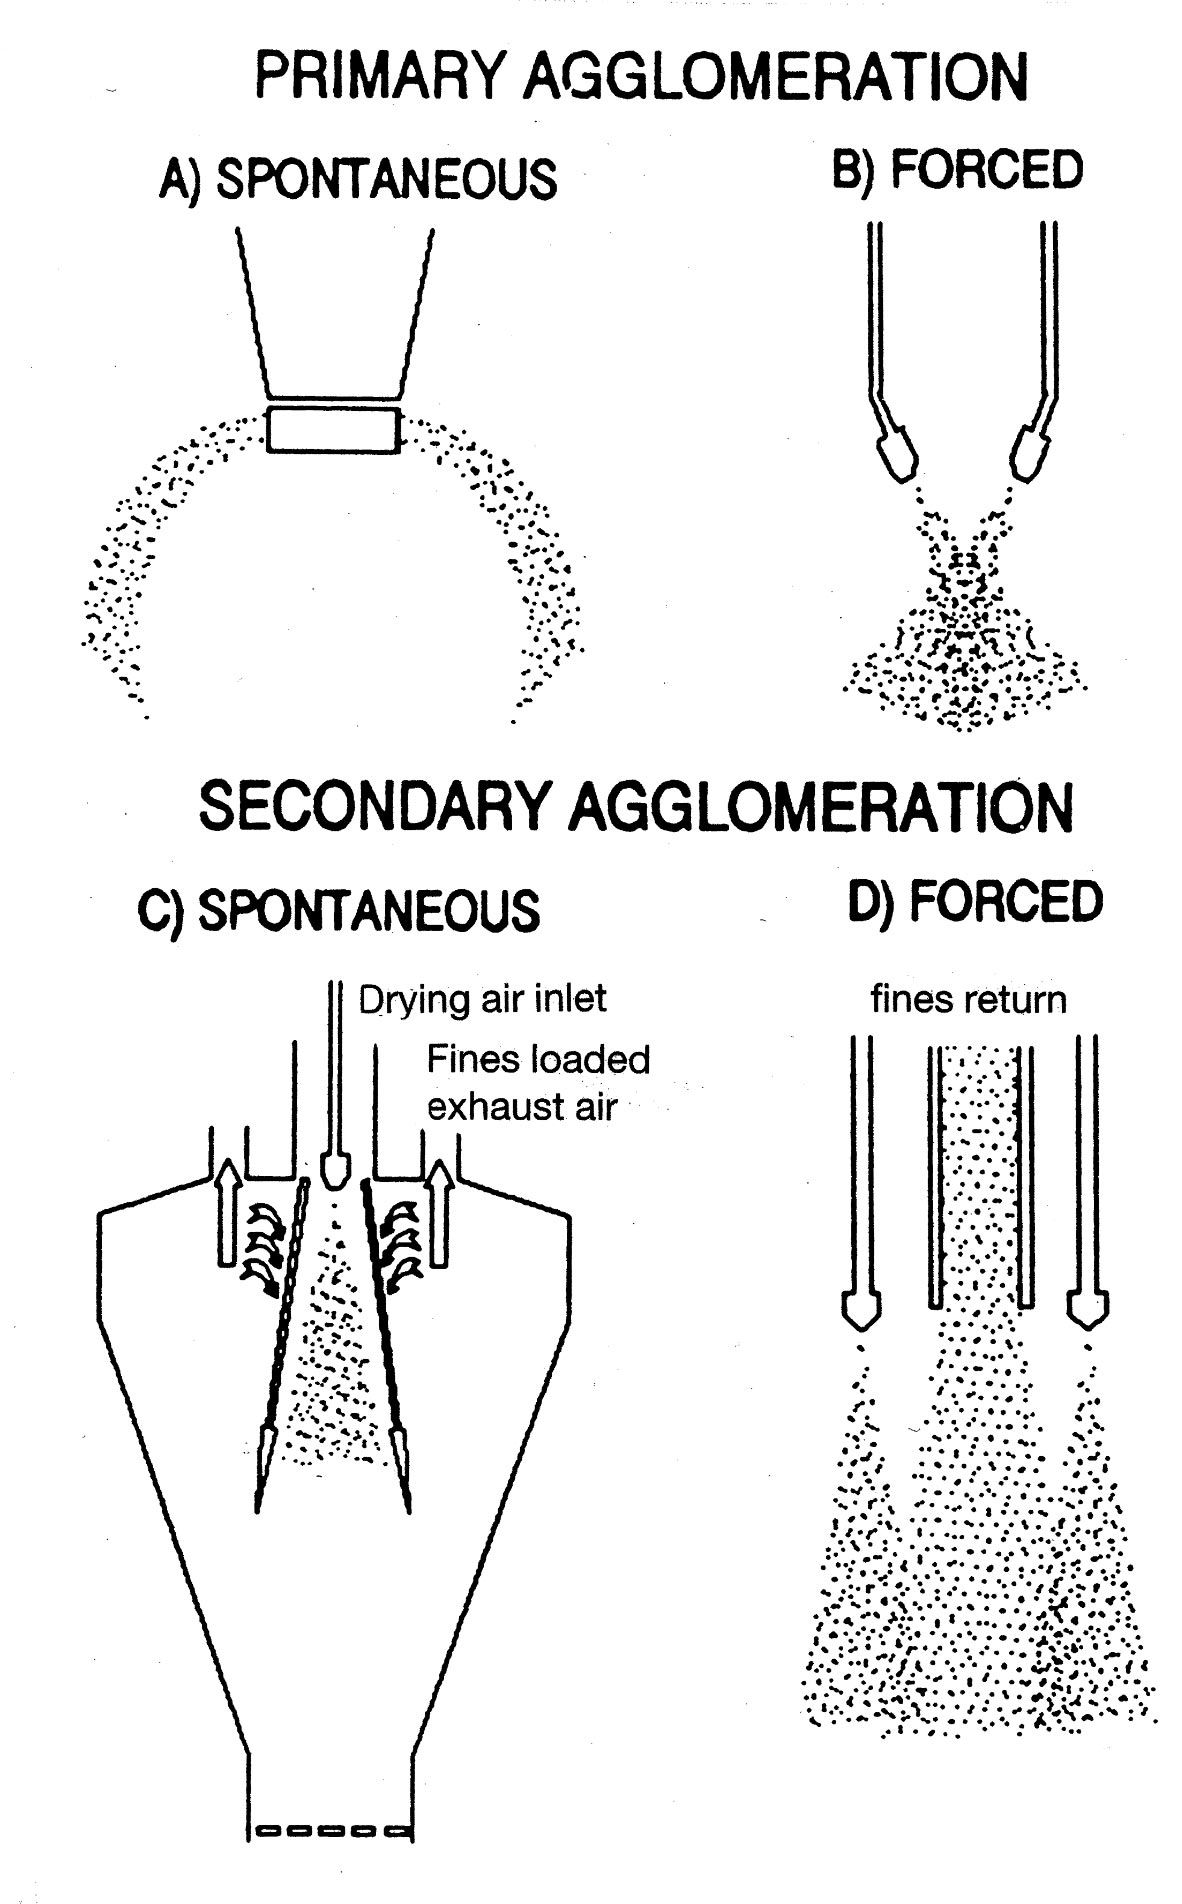 Types of agglomeration